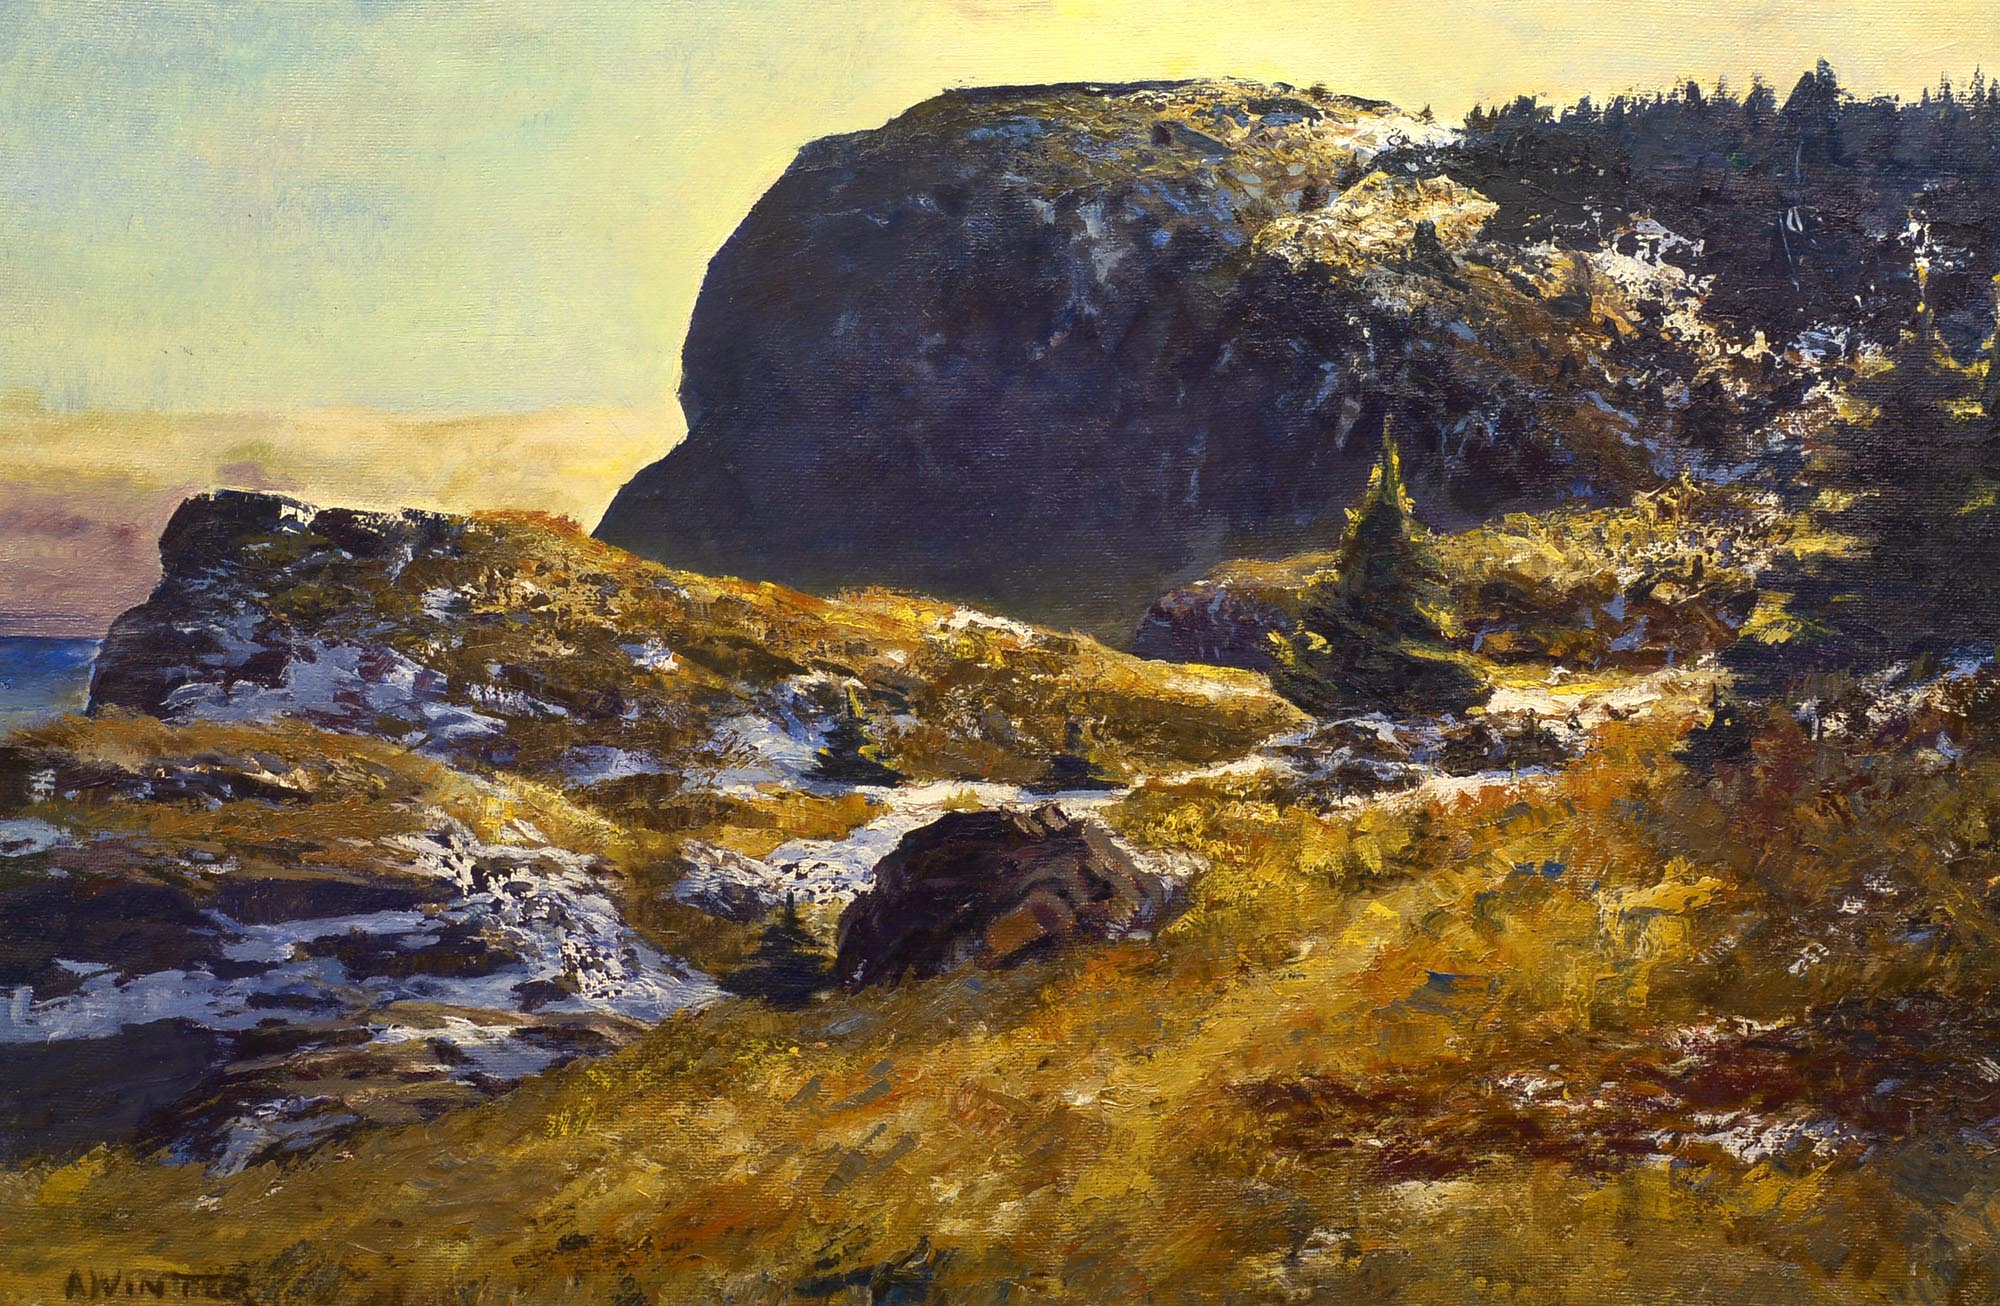 Andrew Winter Late Afternoon, Whitehead